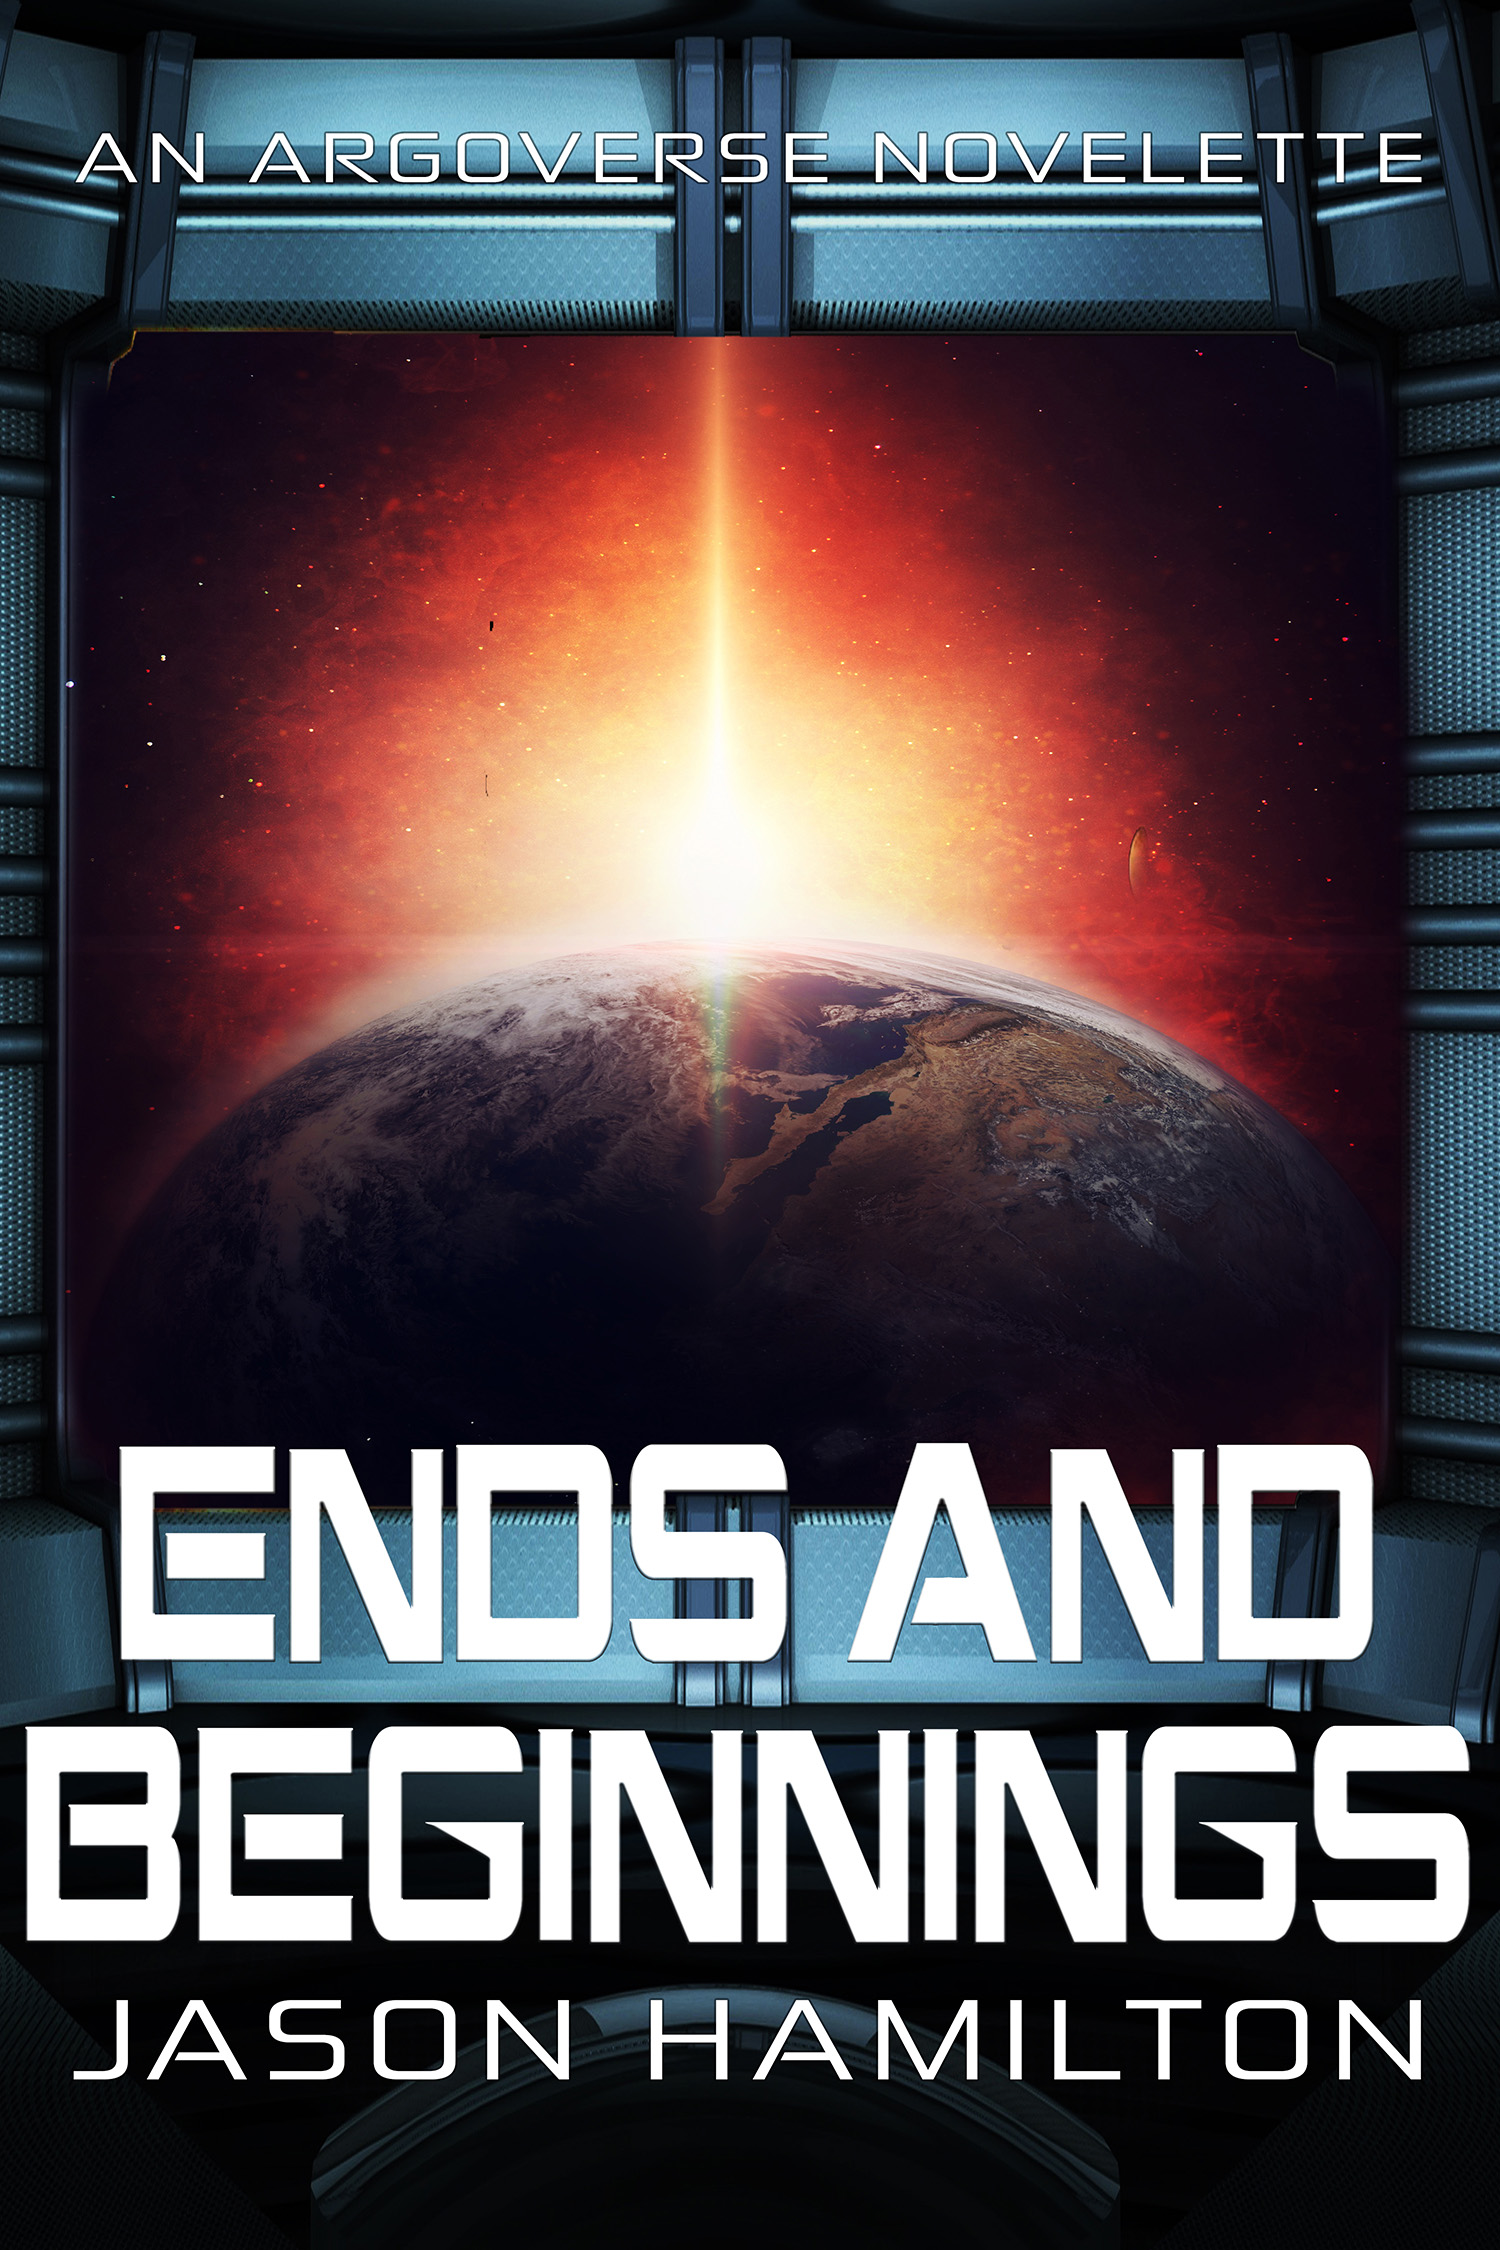 ends and beginnings book cover